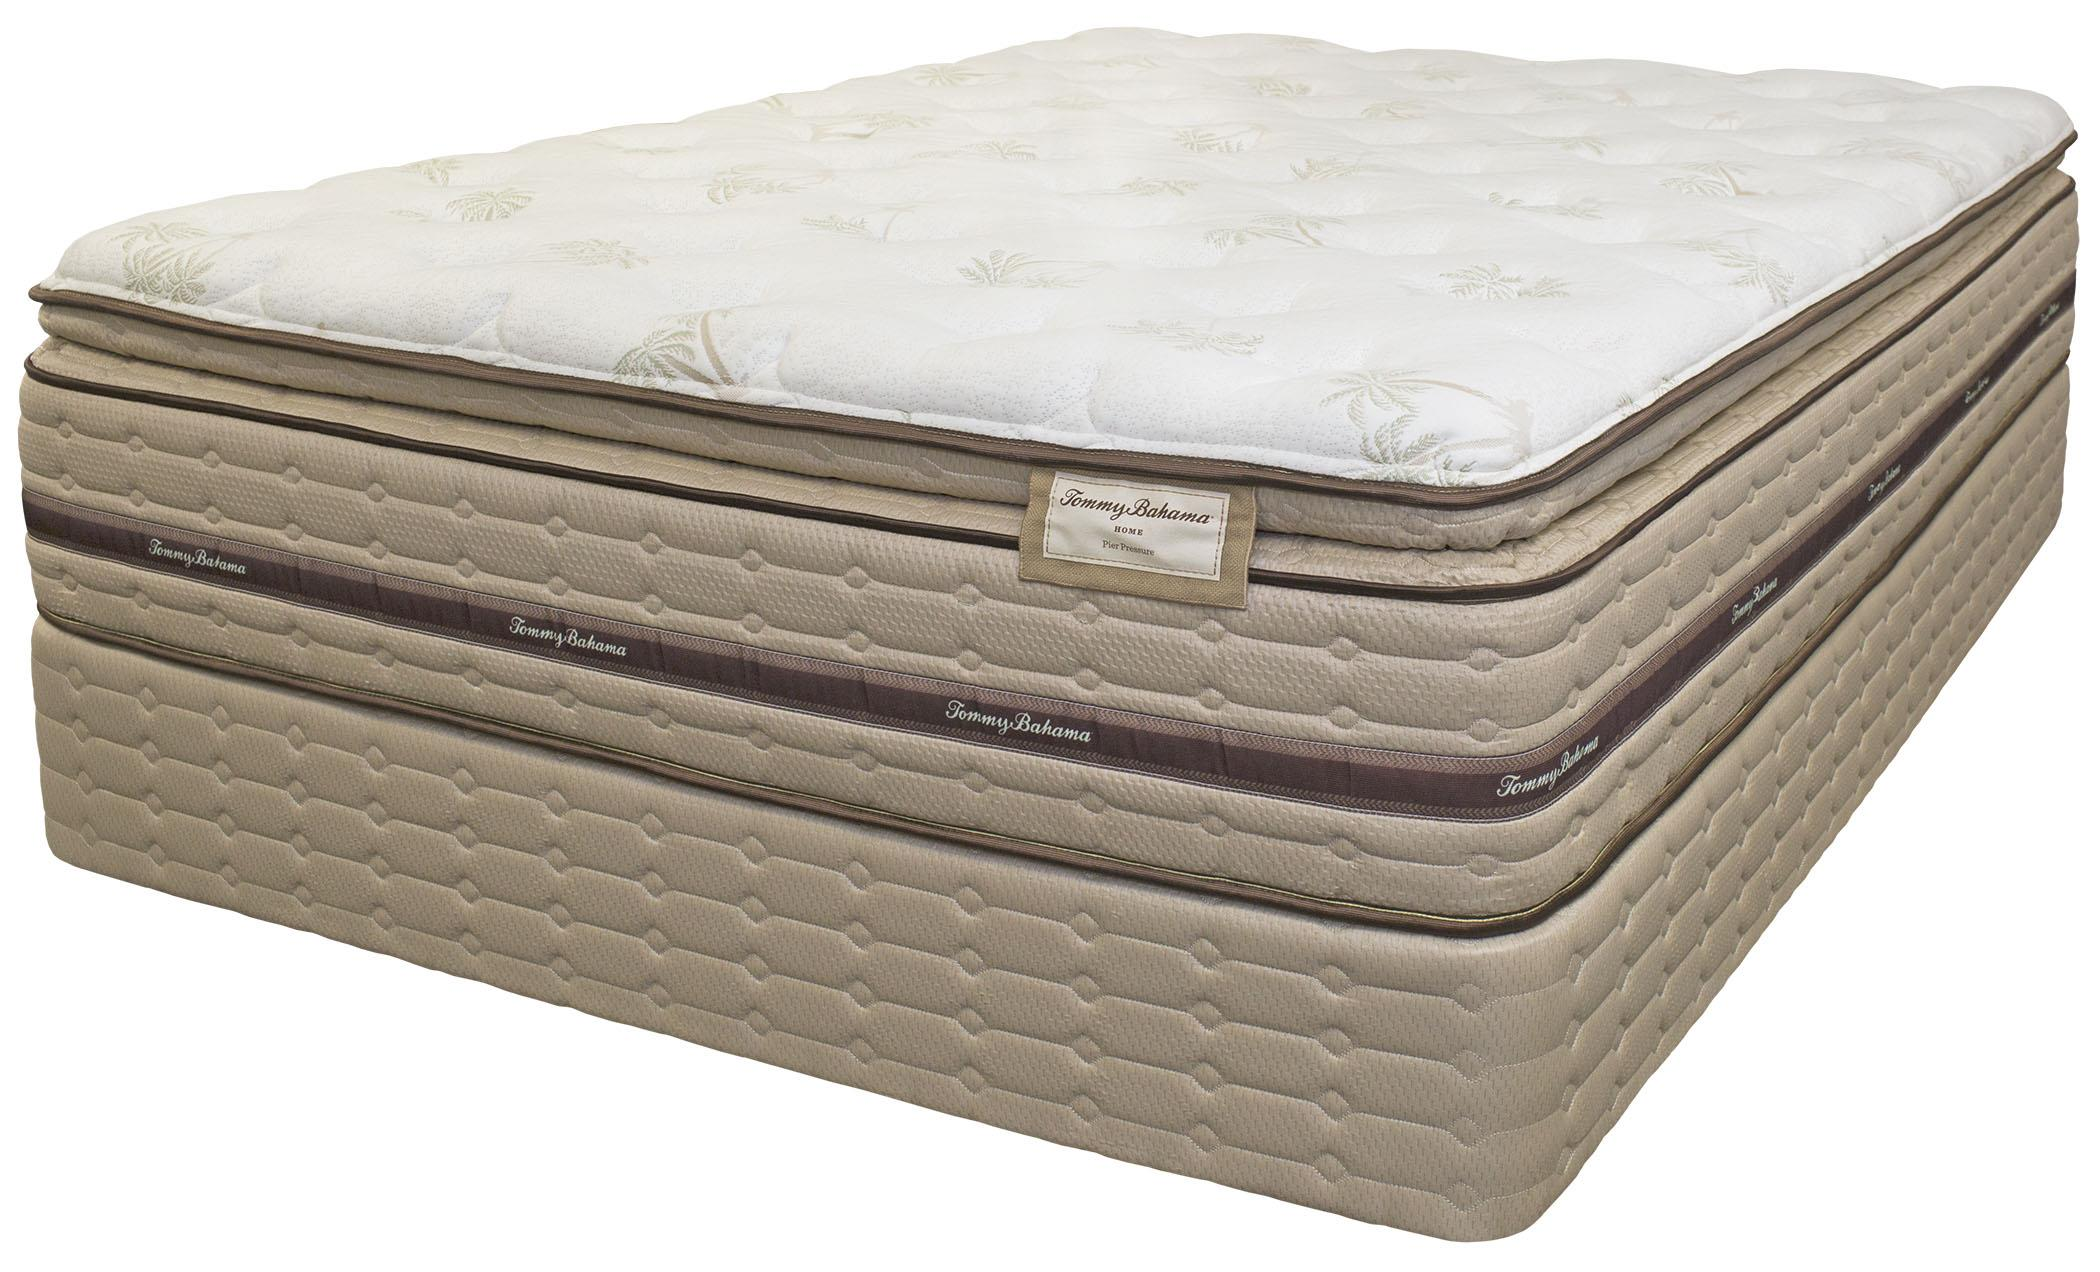 Tommy Bahama Mattress Tommy Bahama Mattress Queen Pier Pressure Pillow Top Matt Set - Item Number: 6025-Q+6005-Q